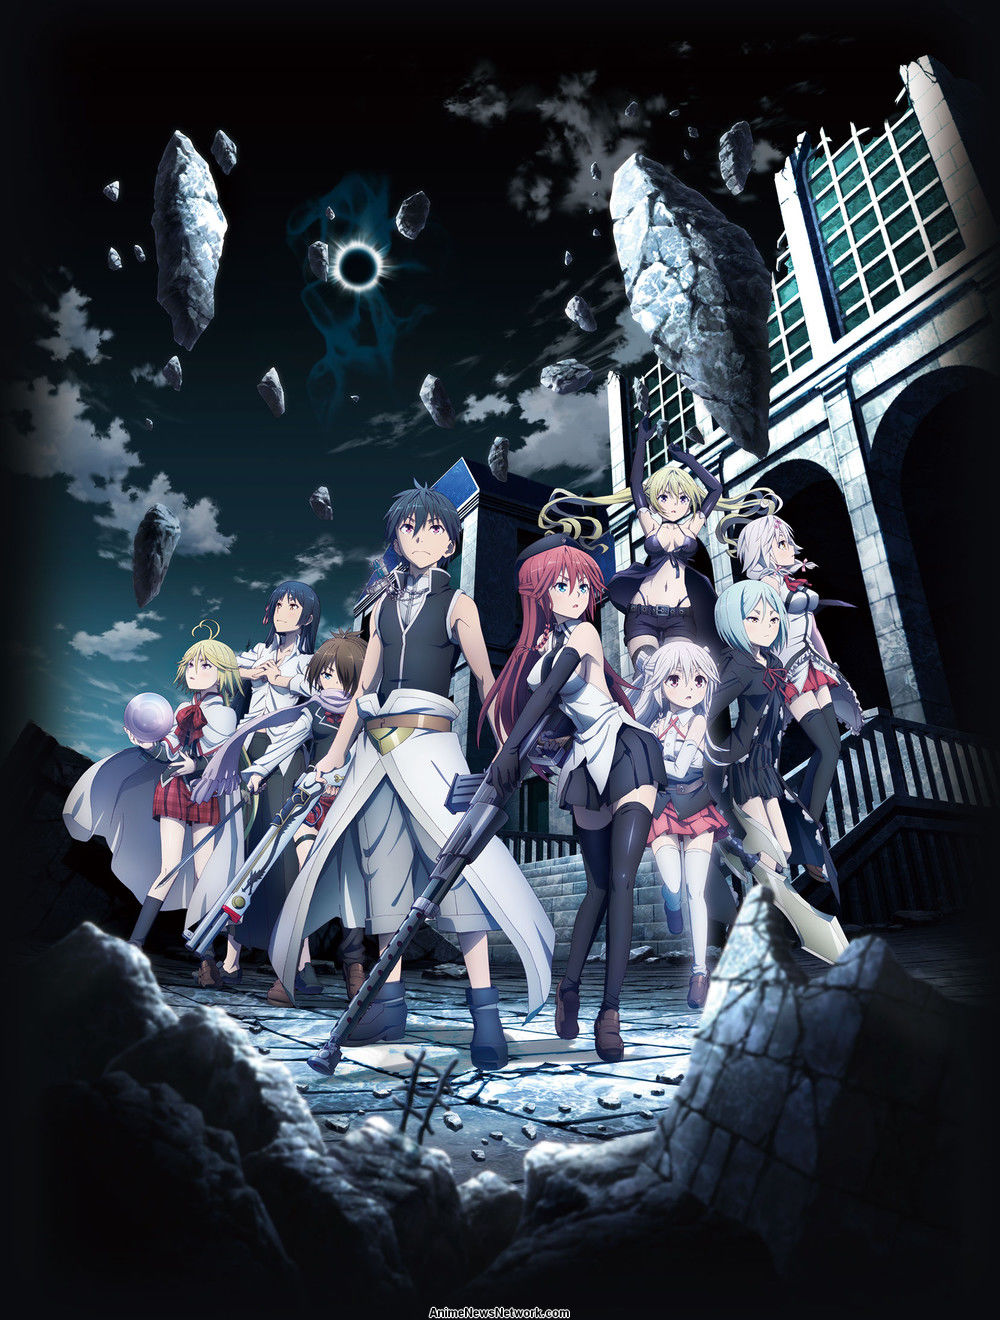 trinity seven film s new cast story title visual 25 the film s story begins when arata inadvertently touches hermes apocrypha lilith s grimoire suddenly he is enveloped by a bright white light